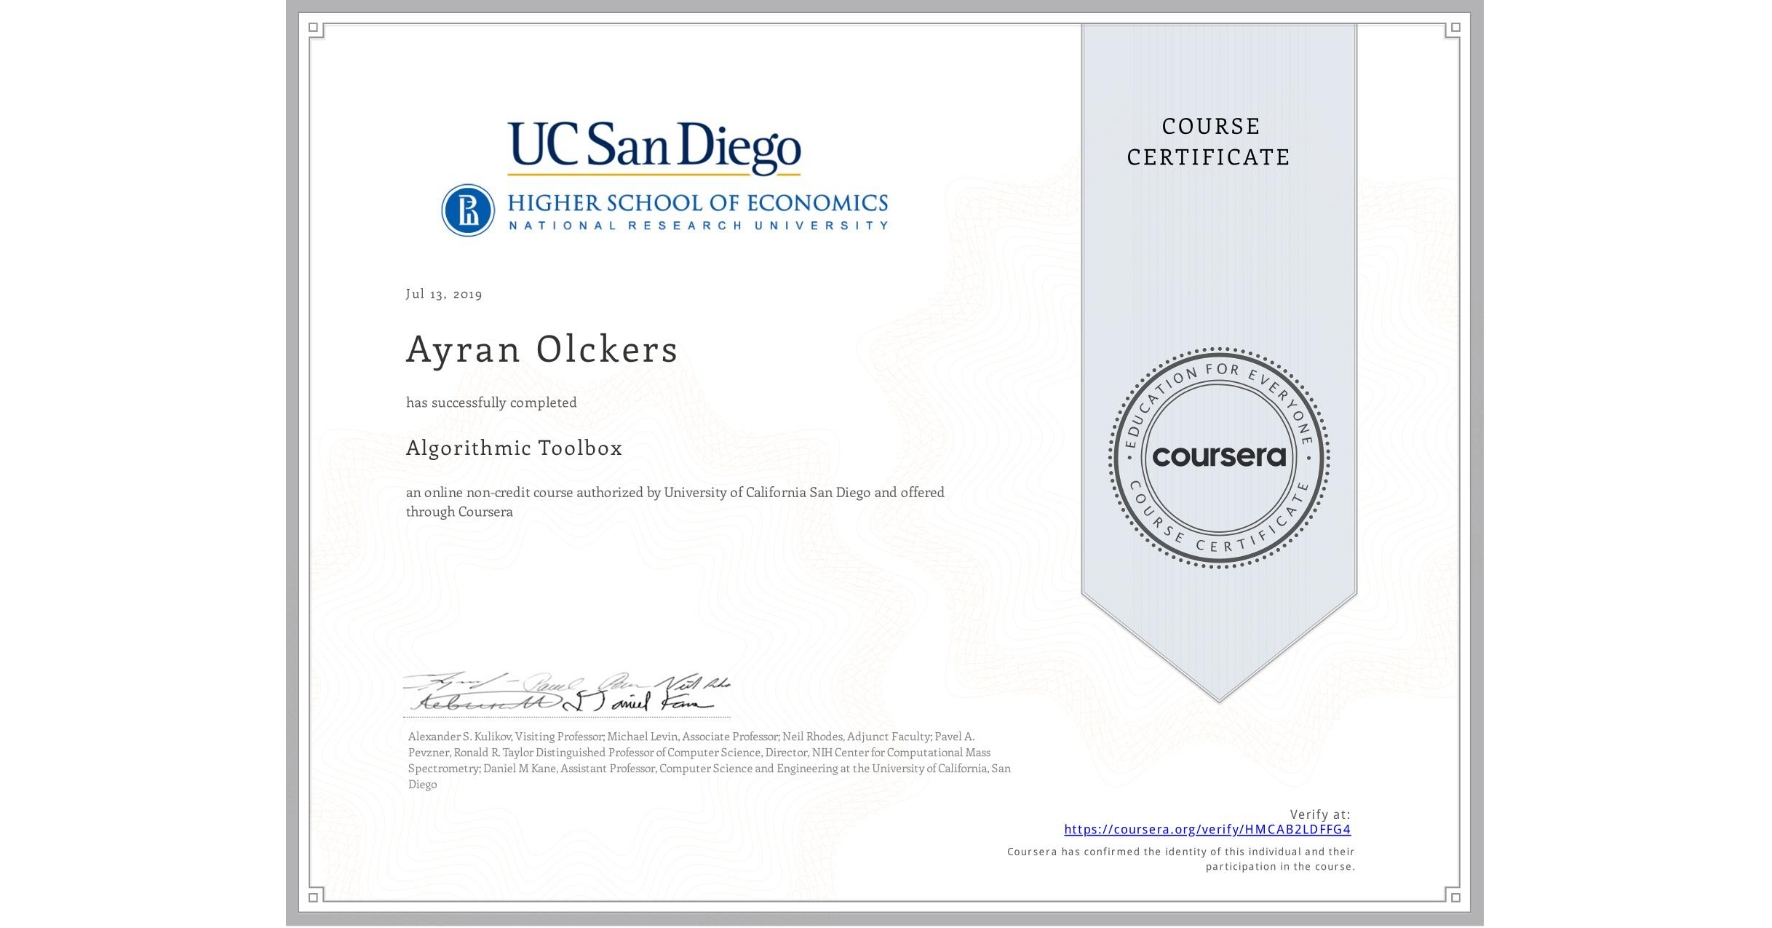 View certificate for Ayran Olckers, Algorithmic Toolbox, an online non-credit course authorized by University of California San Diego & HSE University and offered through Coursera